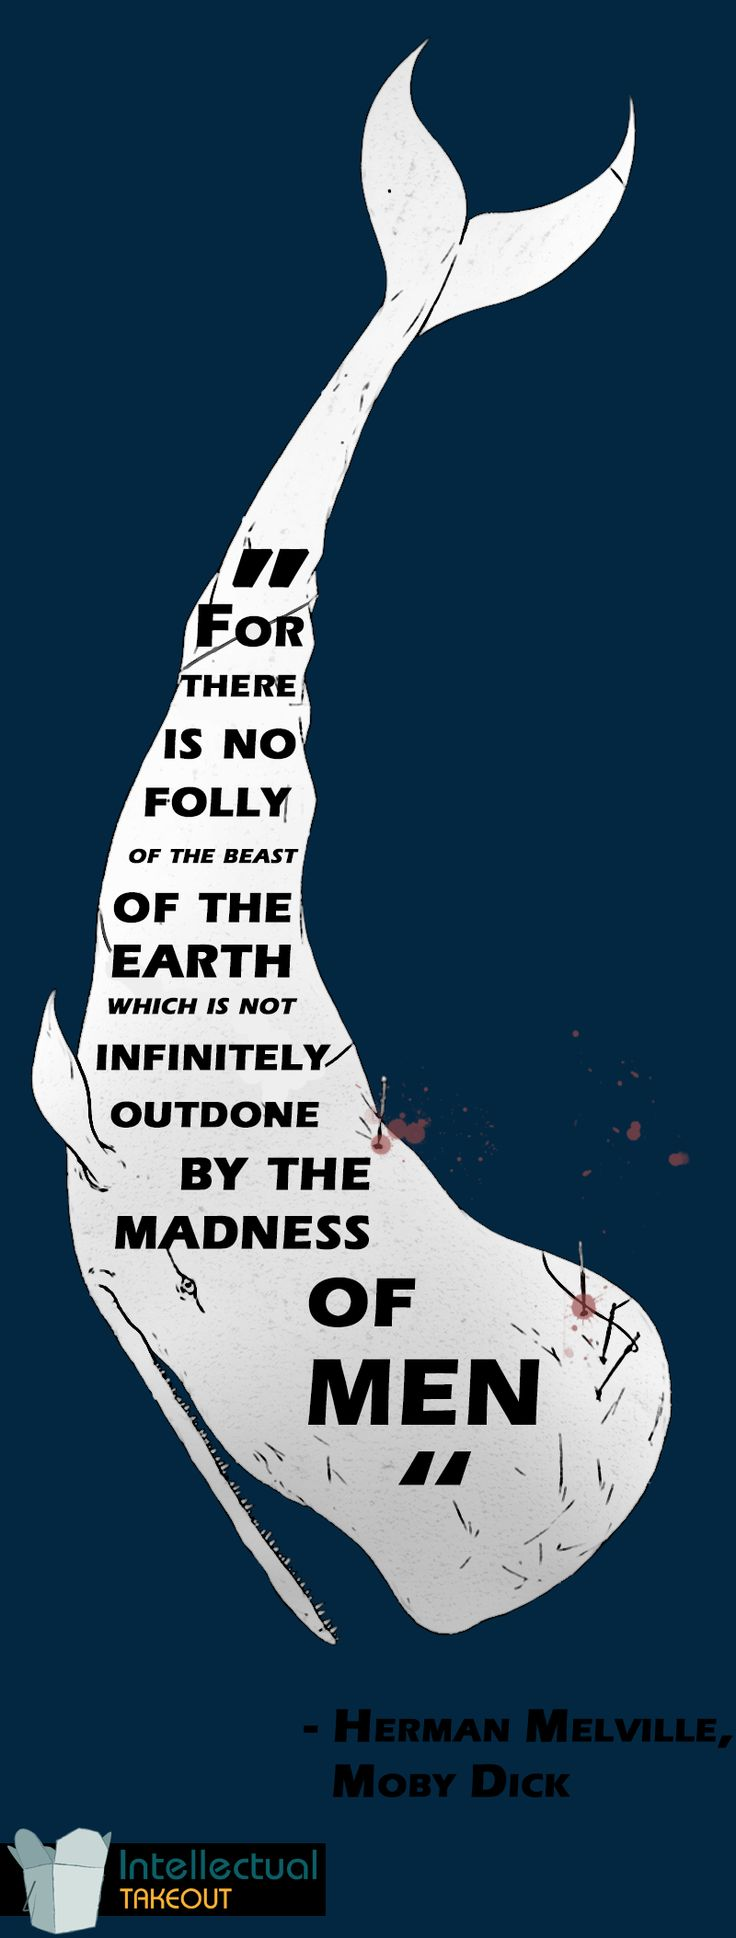 """For there is no folly of the beast of the Earth which is not infinitely outdone by the madness of men.""  - Herman Melville's ""Moby Dick"""